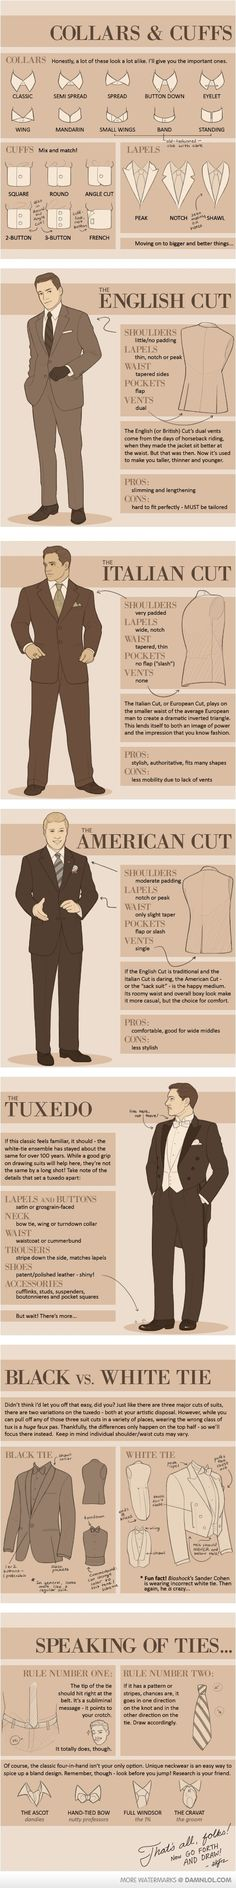 Mens suit breakdown <---This was made to show how to draw them, but it gives really good details if you're looking to buy a suit or tux. :)